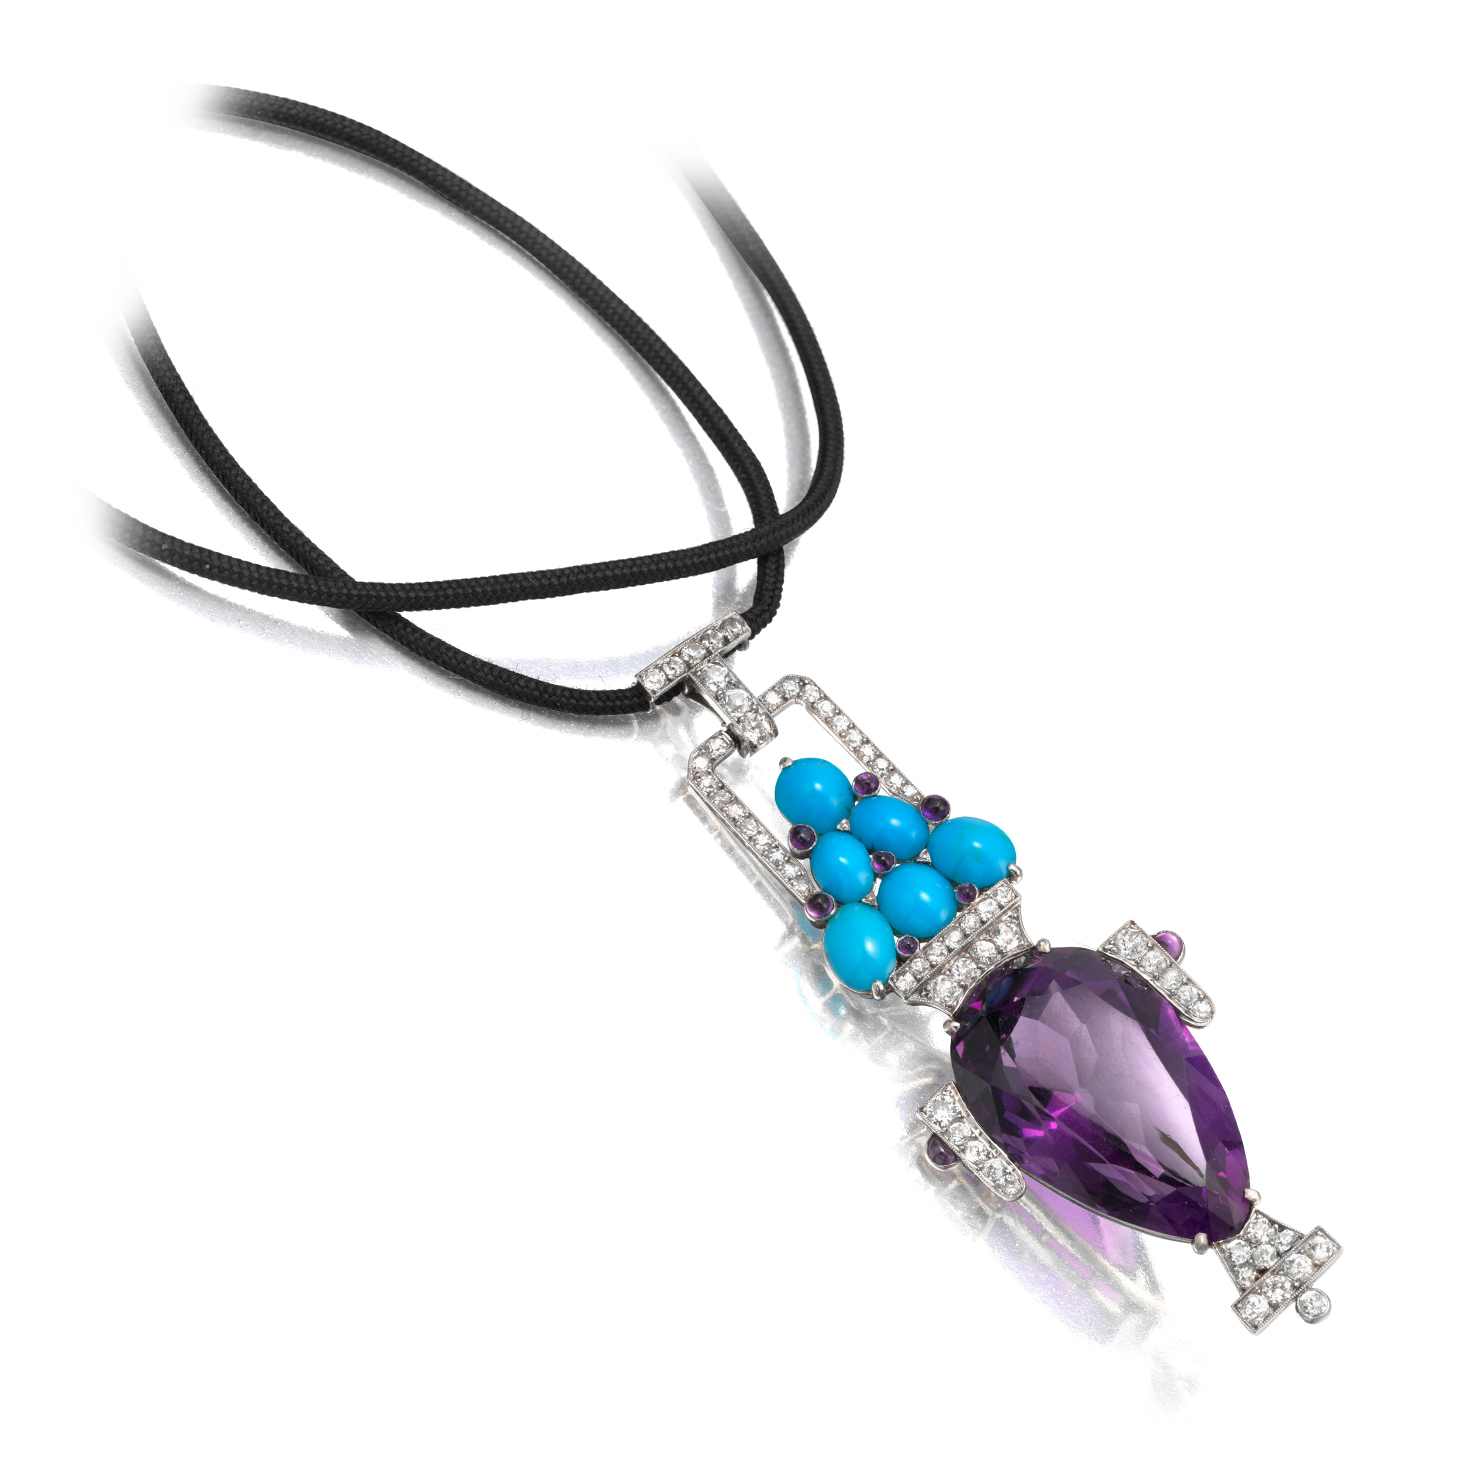 An Important Art Deco Turquoise, Amethyst and Diamond Pendant, by Cartier, circa 1915